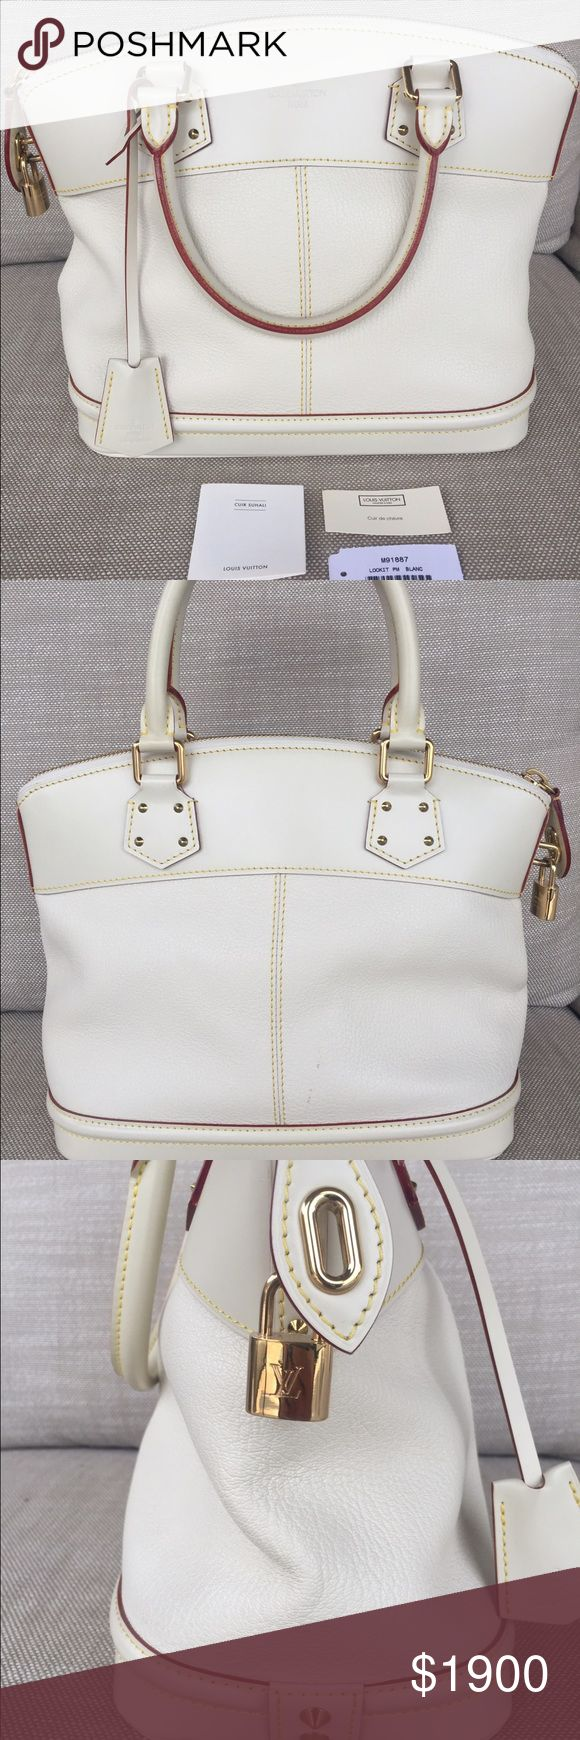 Louis Vuitton Suhali Lockit PM blanc In pristine condition. Hardly used. Guaranteed authentic, purchased from the 5th Avenue Maison in NYC. Any questions I will gladly answer. Louis Vuitton Bags Totes